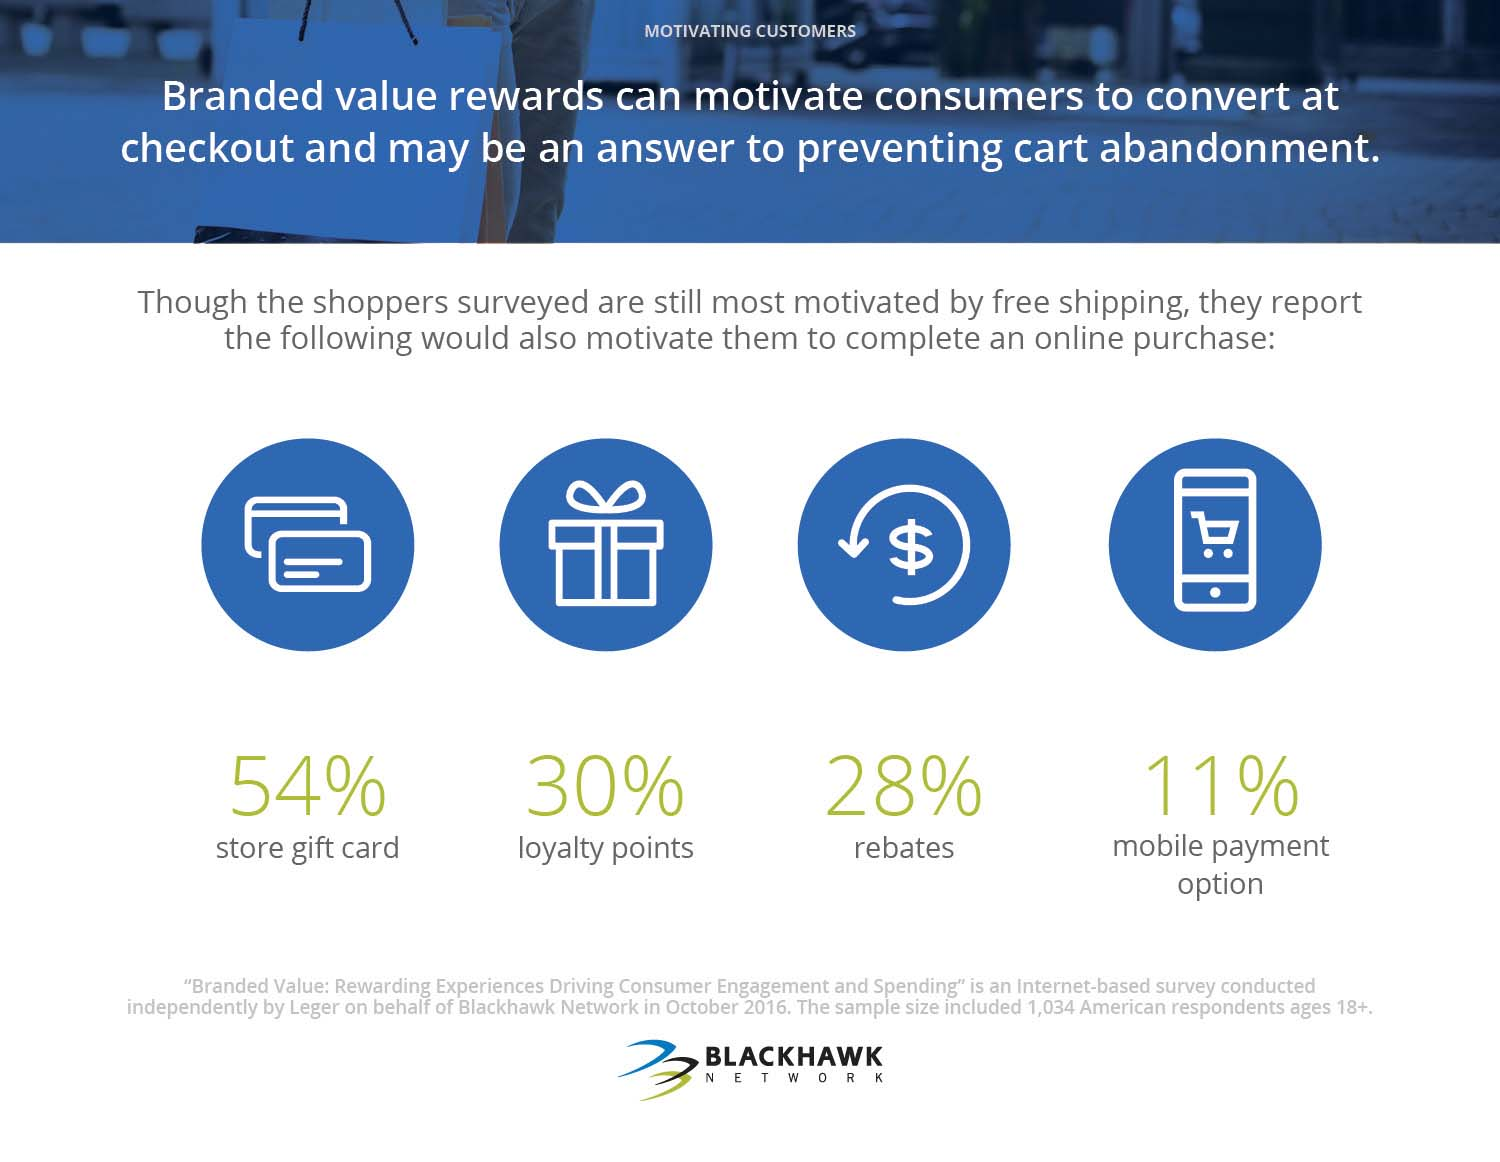 Branded value rewards can motivate consumers to convert at checkout and may be an answer to preventing card abandonment.